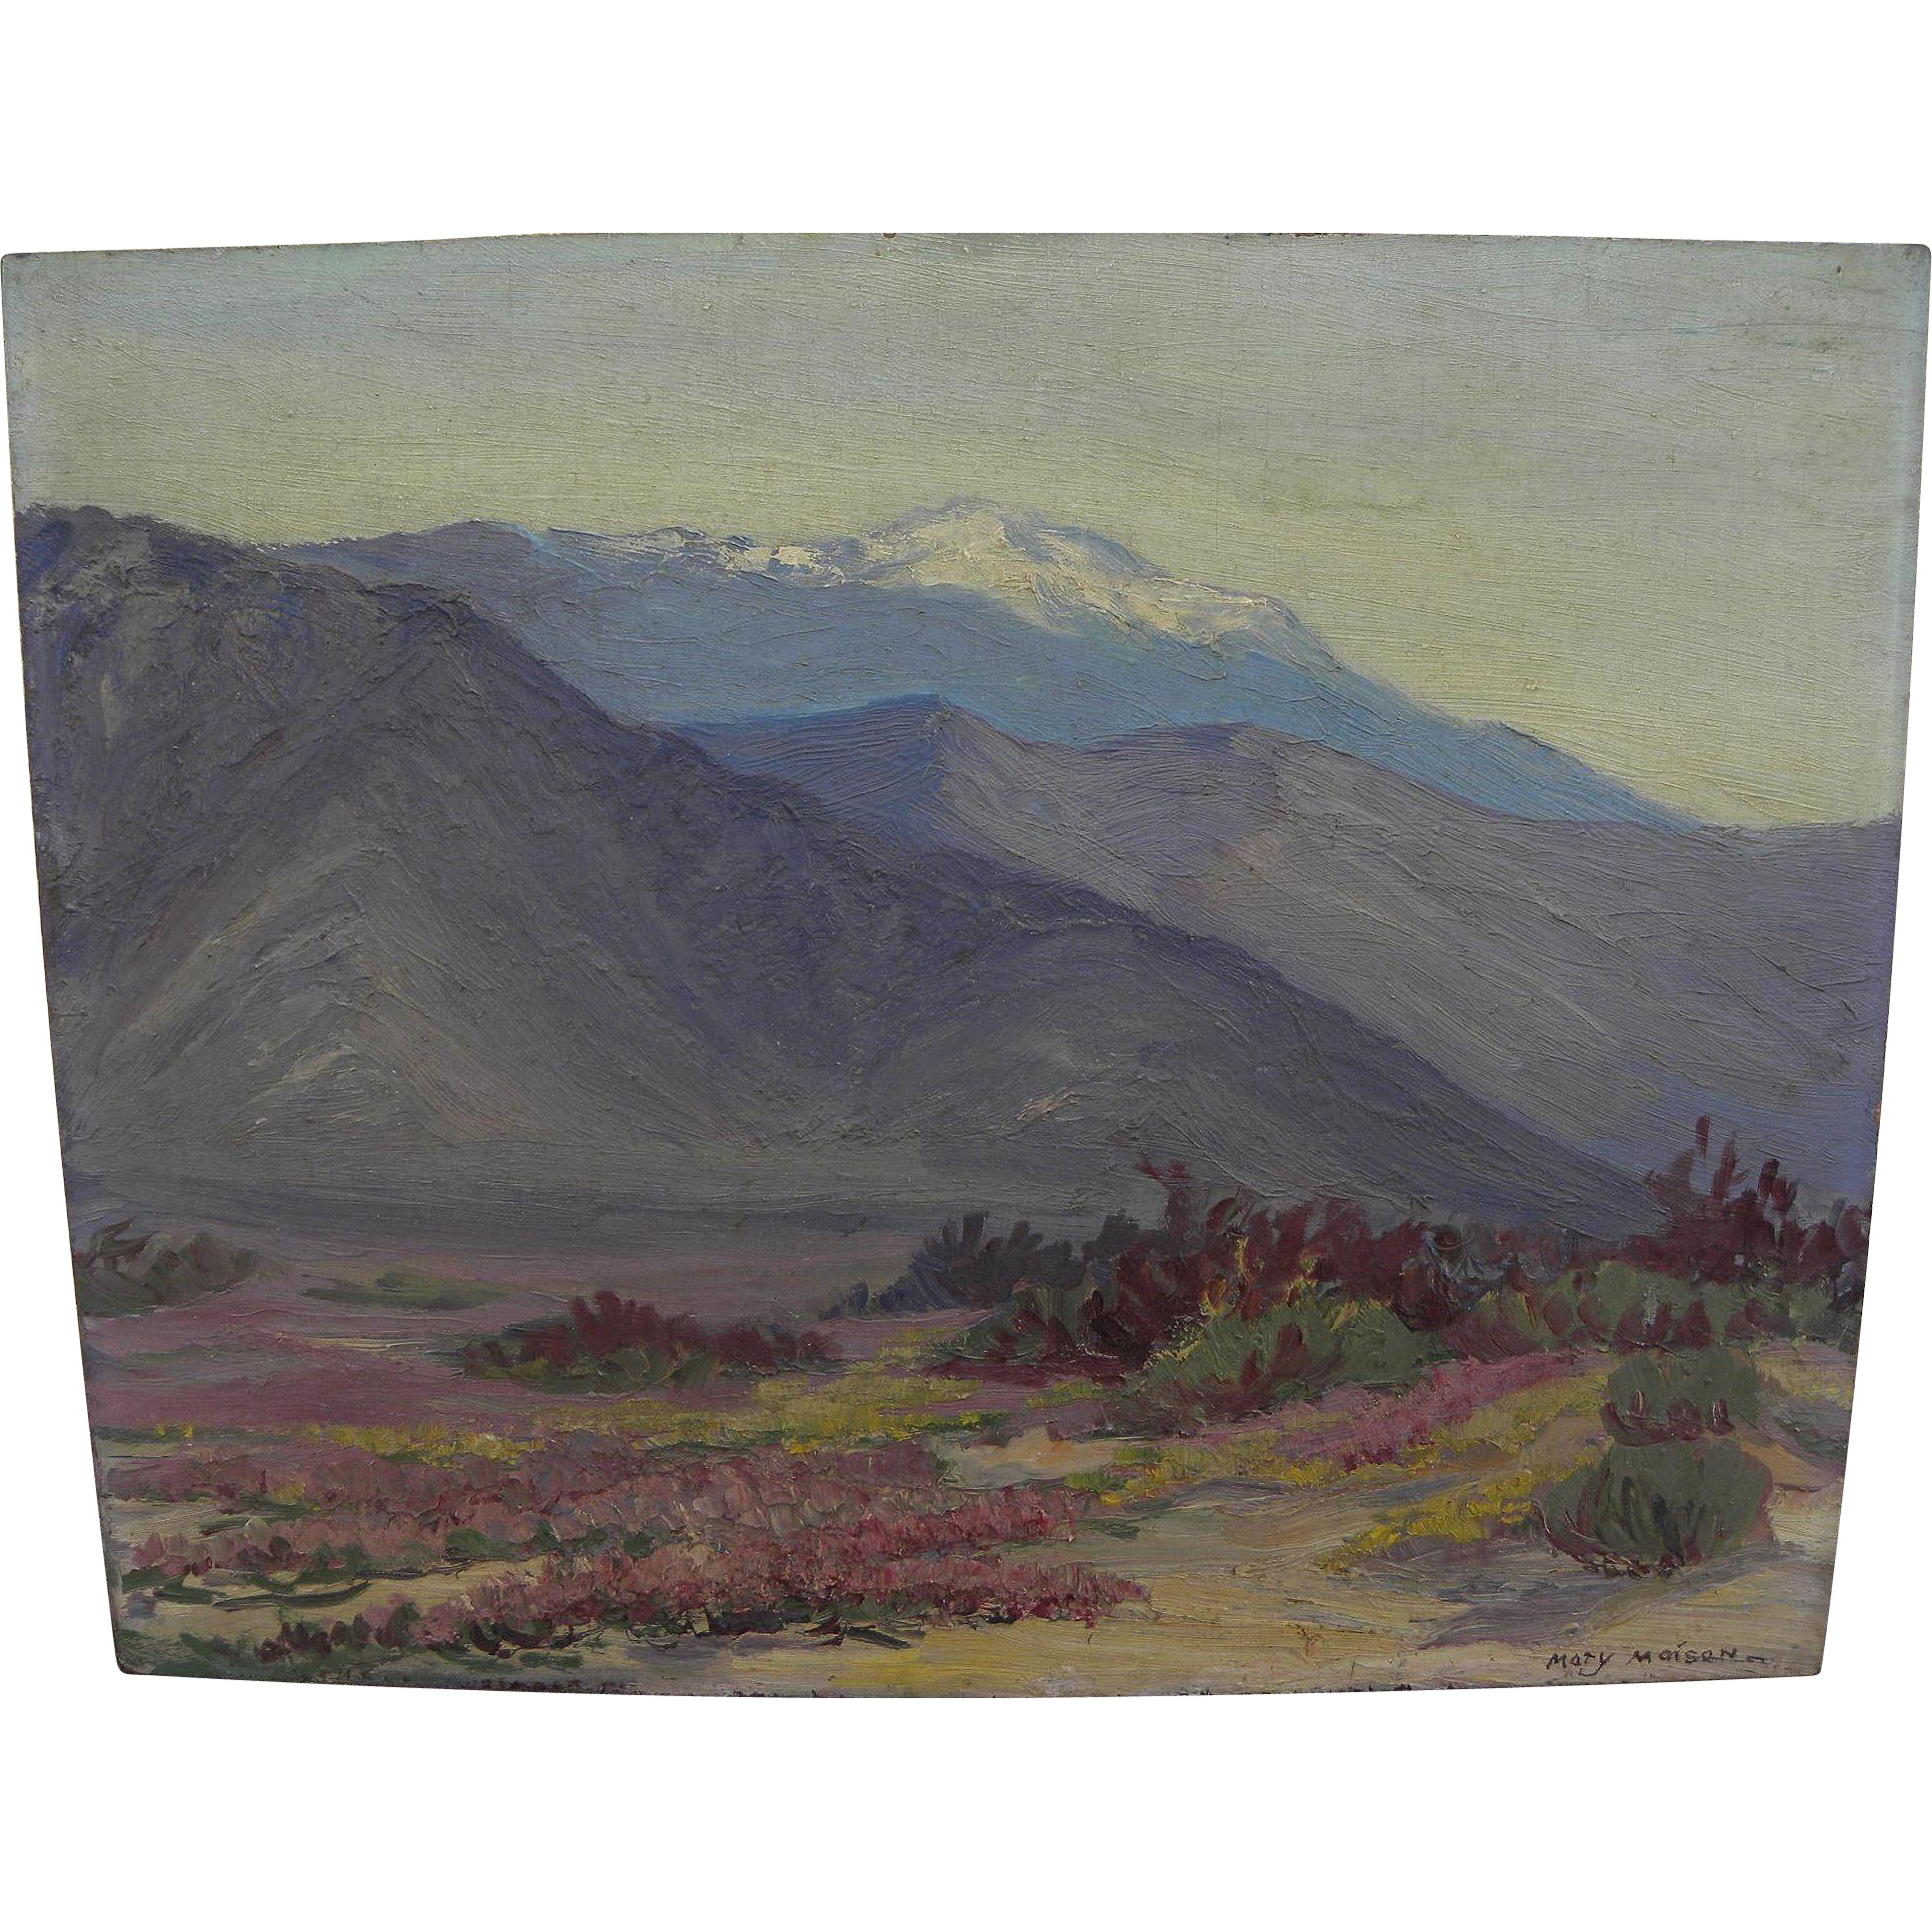 MARY MAISON (1886-1954) vintage California plein air art painting of high mountain and desert in spring